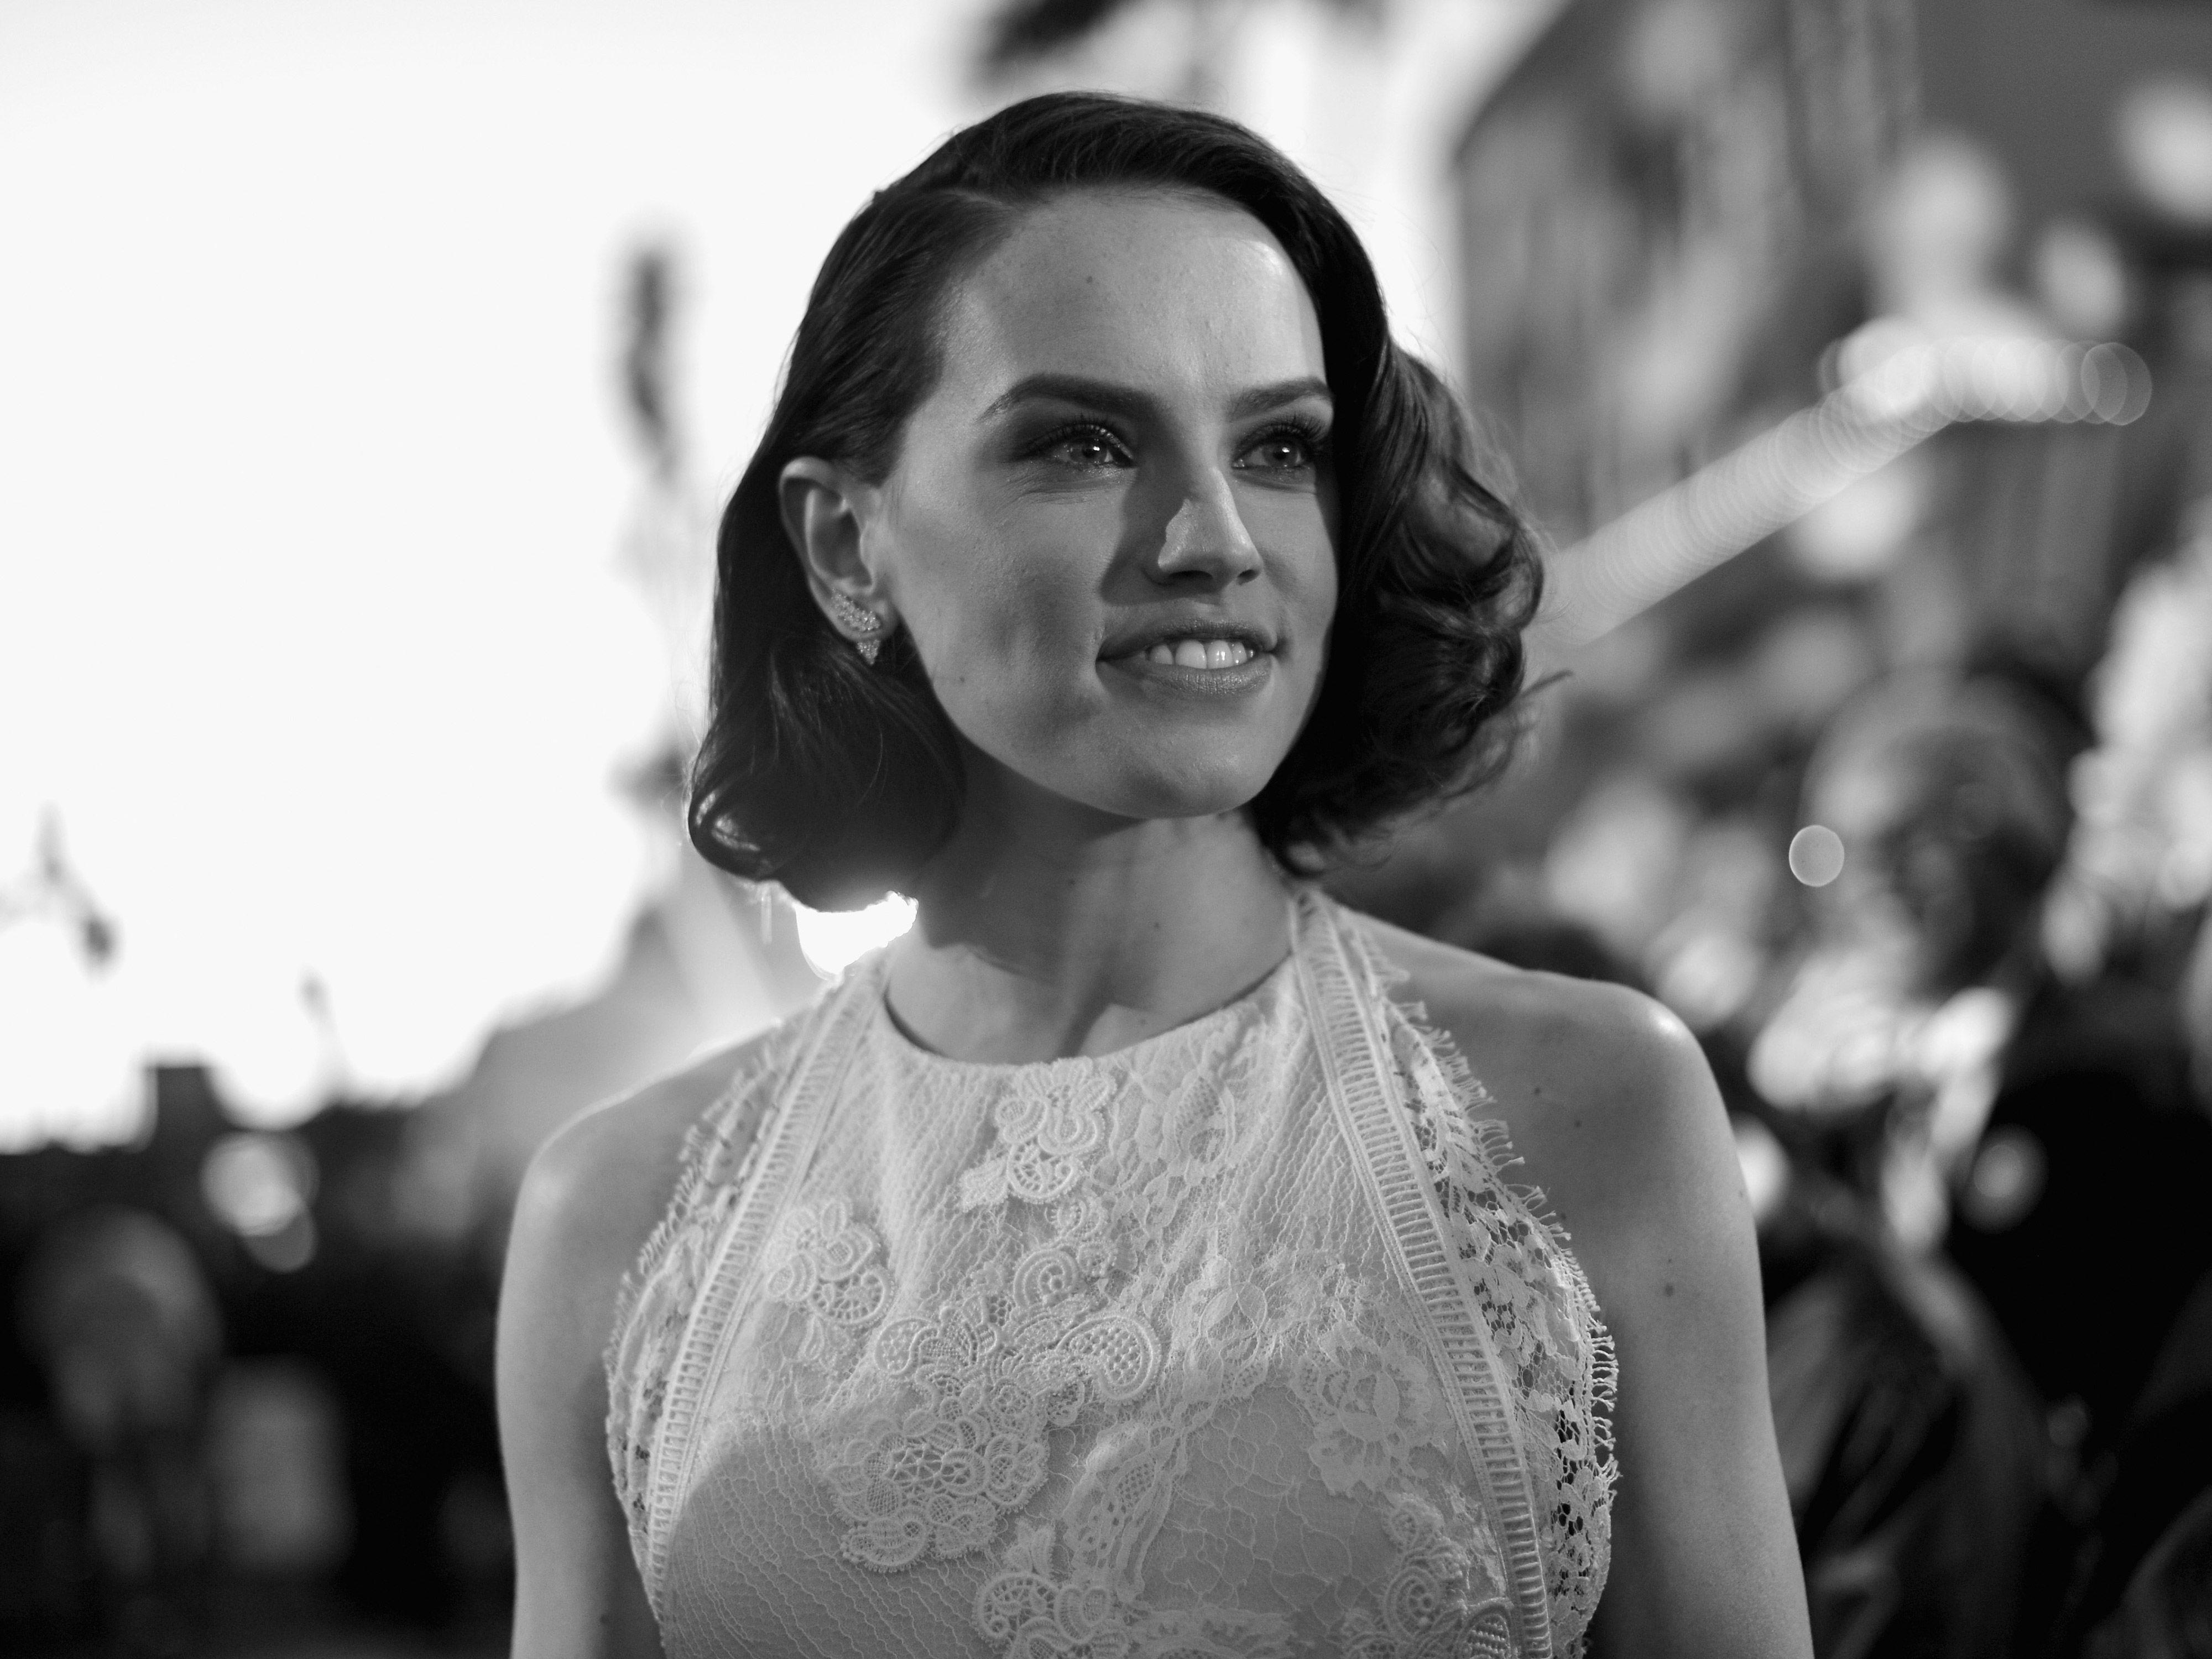 2018 Daisy Ridley Monochrome, HD Celebrities, 4k Wallpapers, Images ...